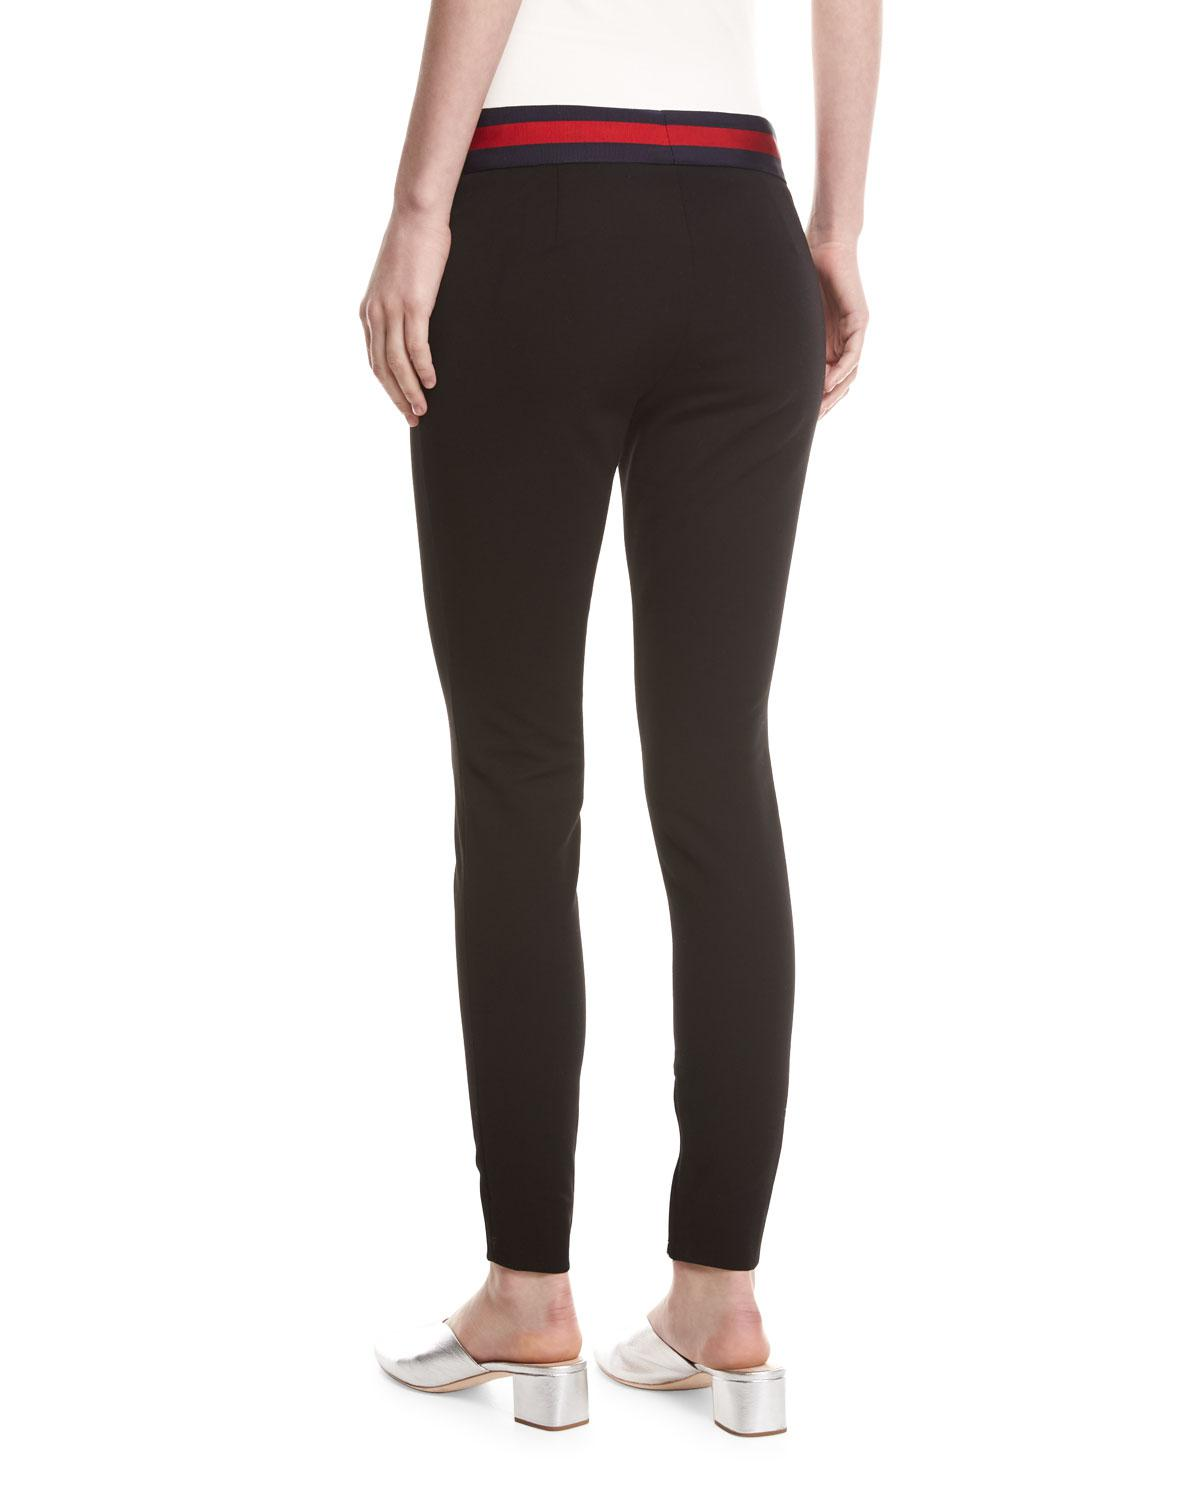 Lyst - Gucci Compact Knit Leggings With Sylvie Web Belt in Black